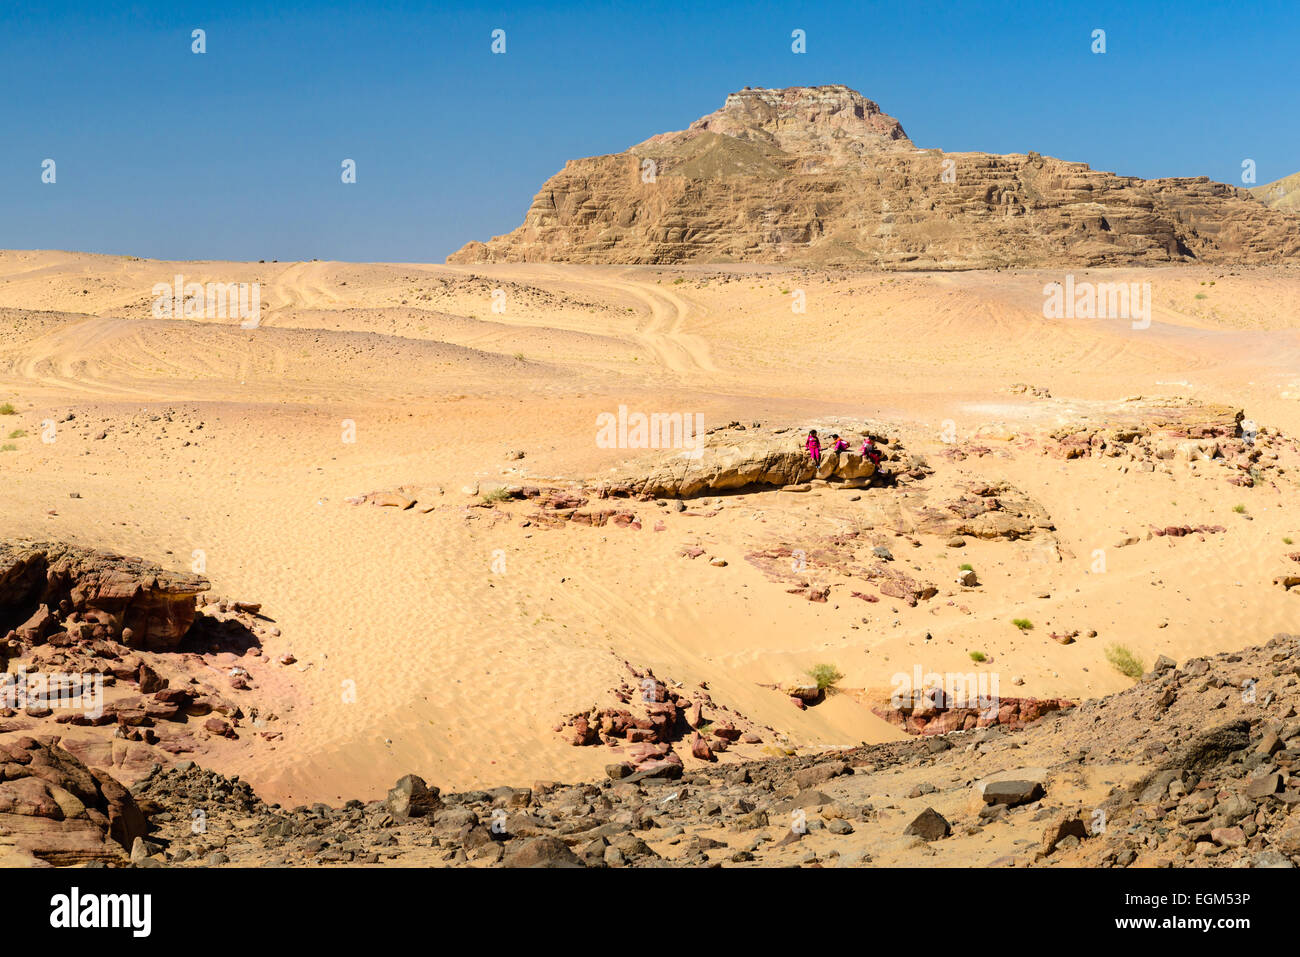 Entry to Colored Canyon in Sinai, Egypt. Coloured Canyon is a rock formation and dried riverbed on Sinai Peninsula - Stock Image